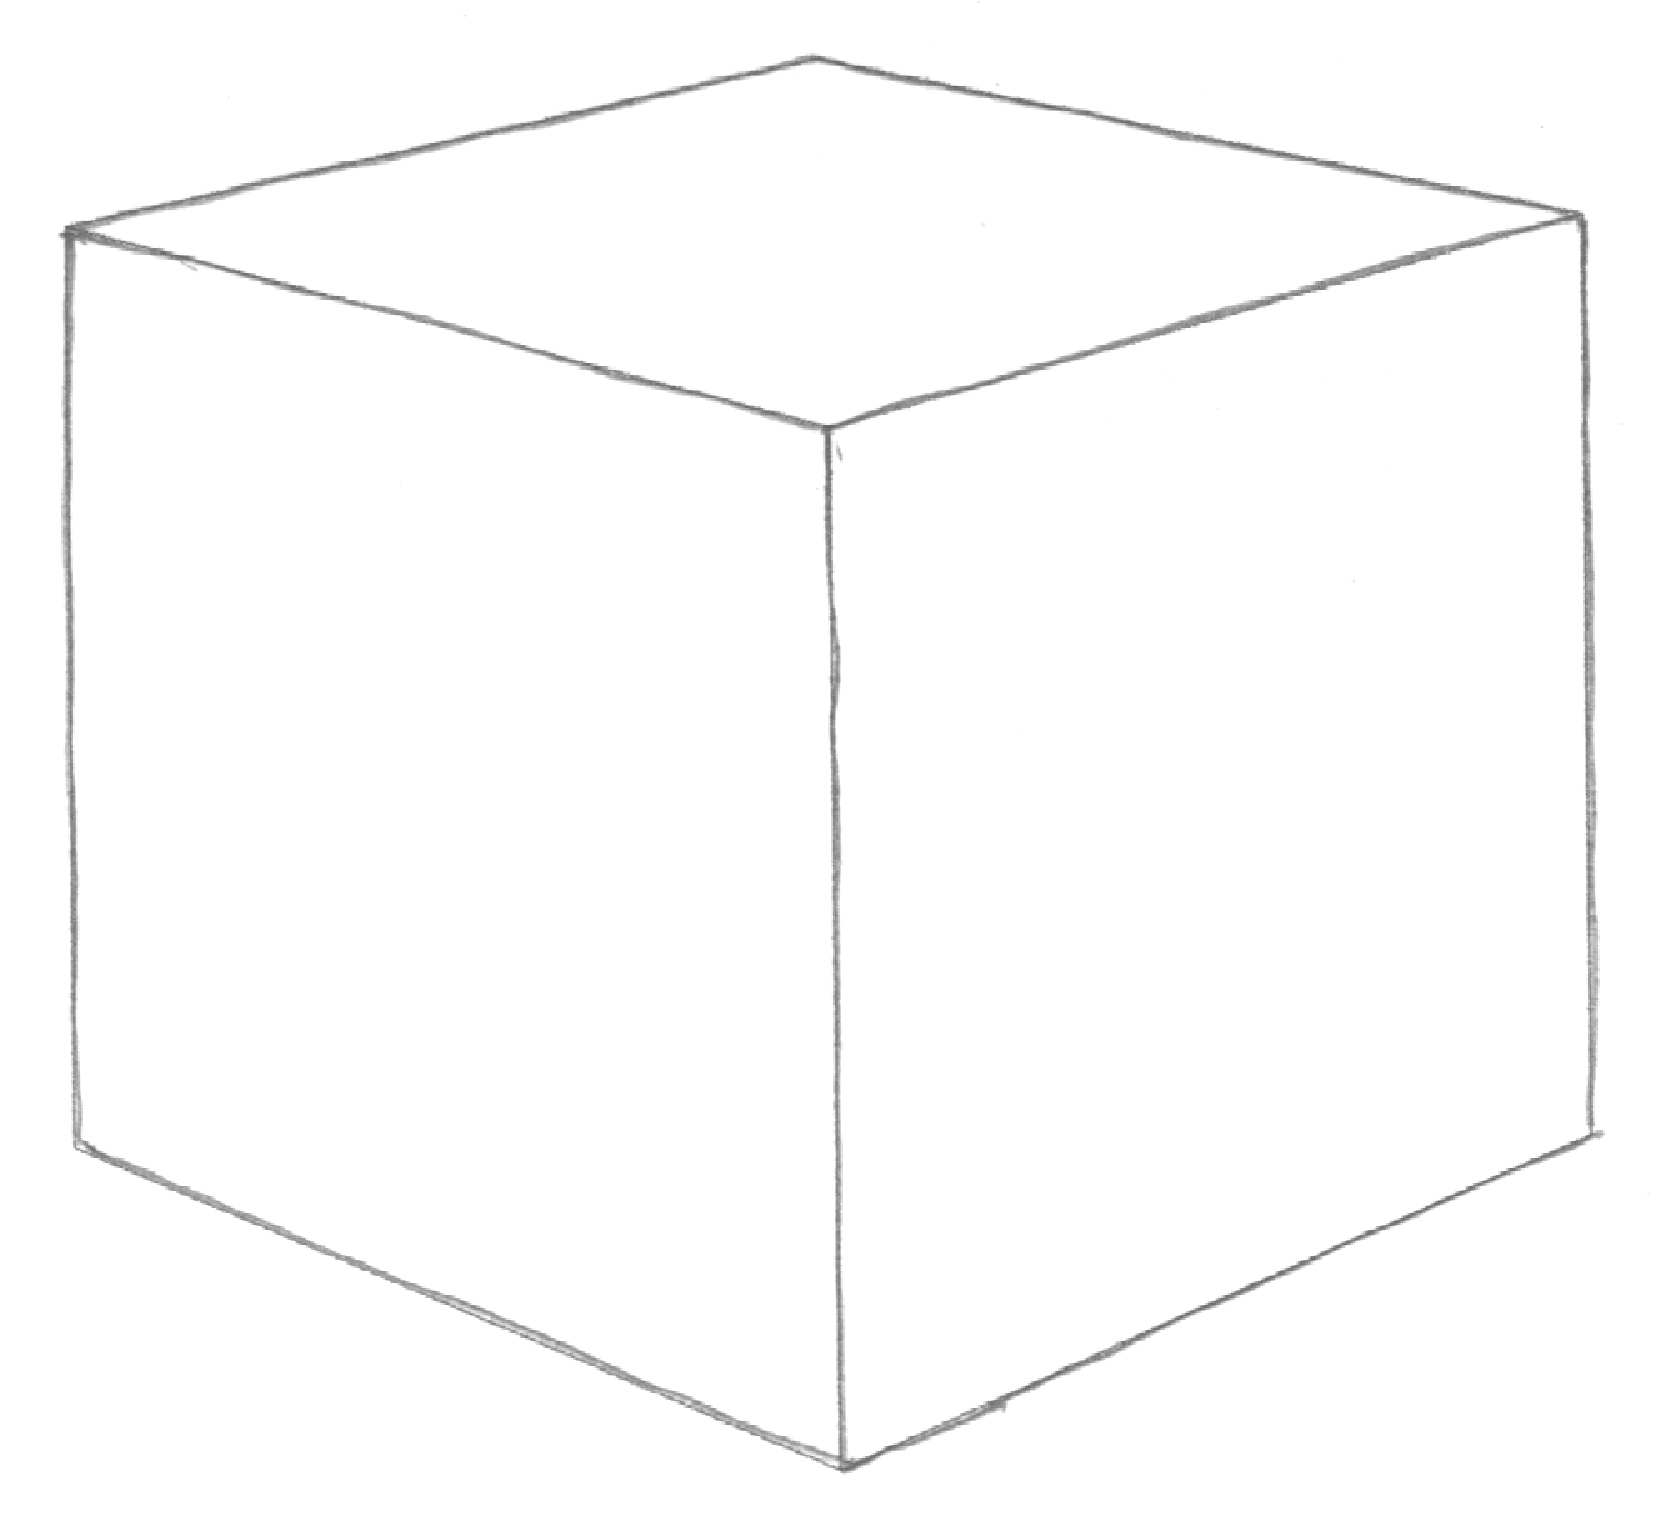 Drawn cube Is thickness lines drawing lines